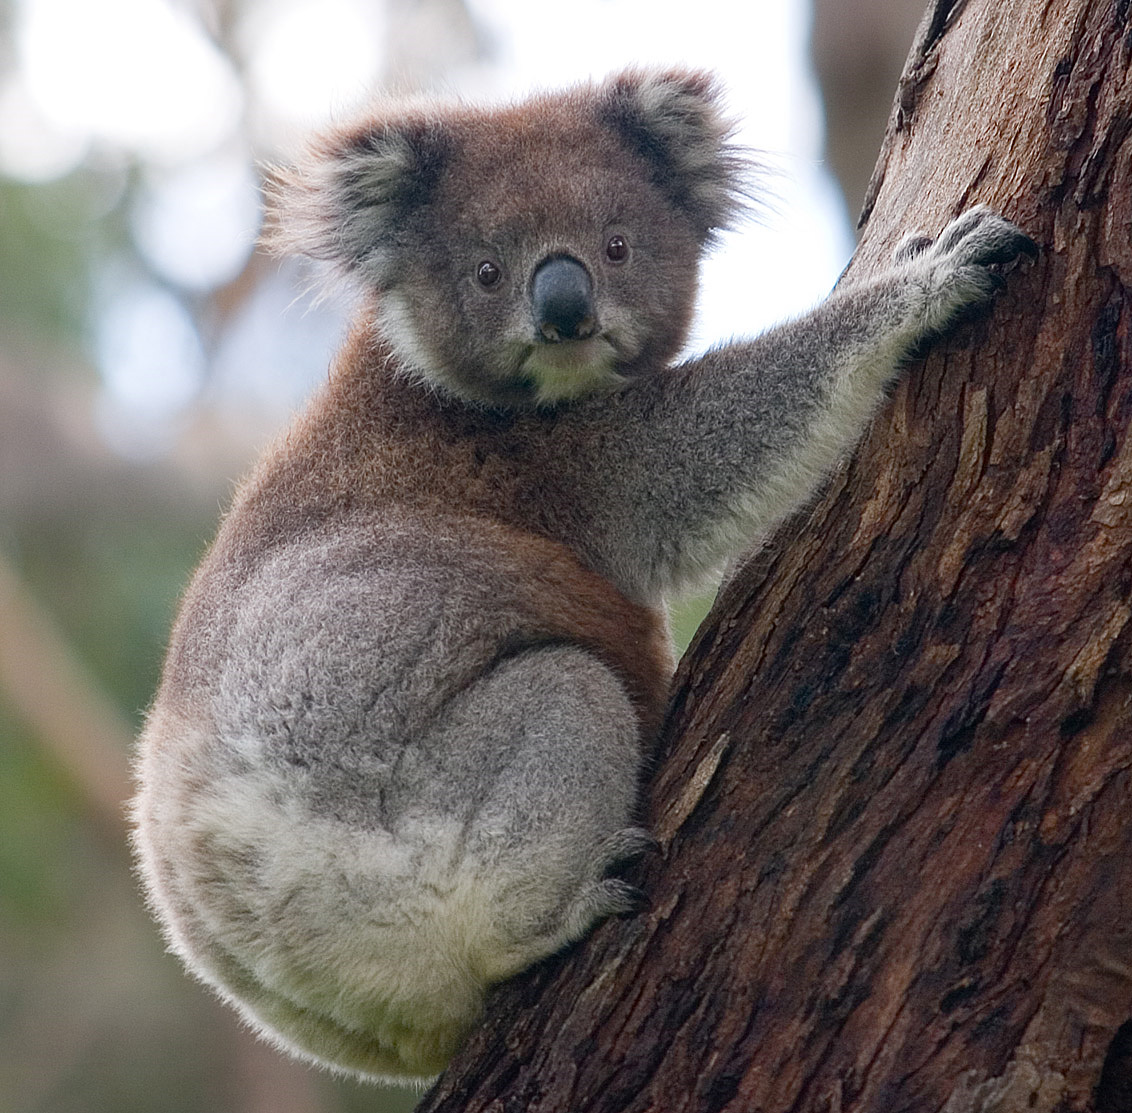 https://en.wikipedia.org/wiki/File:Koala_climbing_tree.jpg